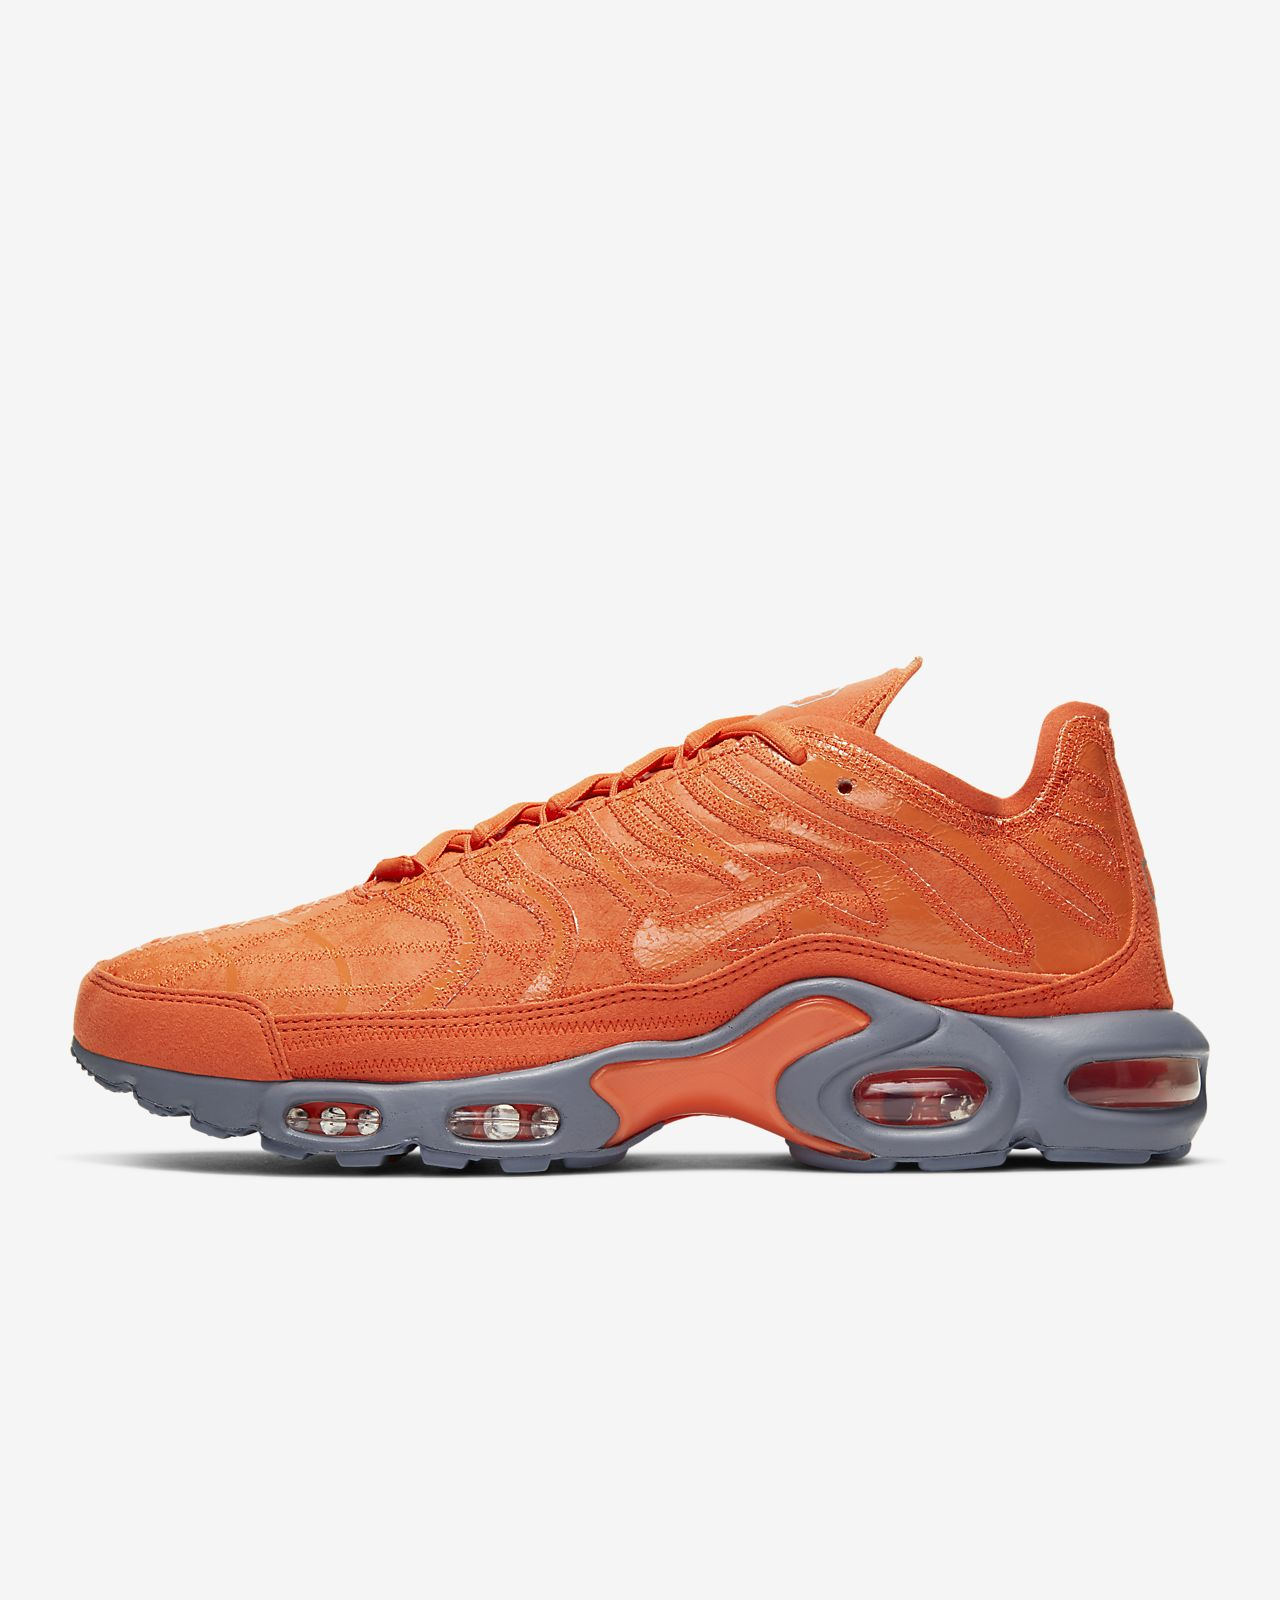 Nike Air Max Plus Deconstructed Men's Shoe